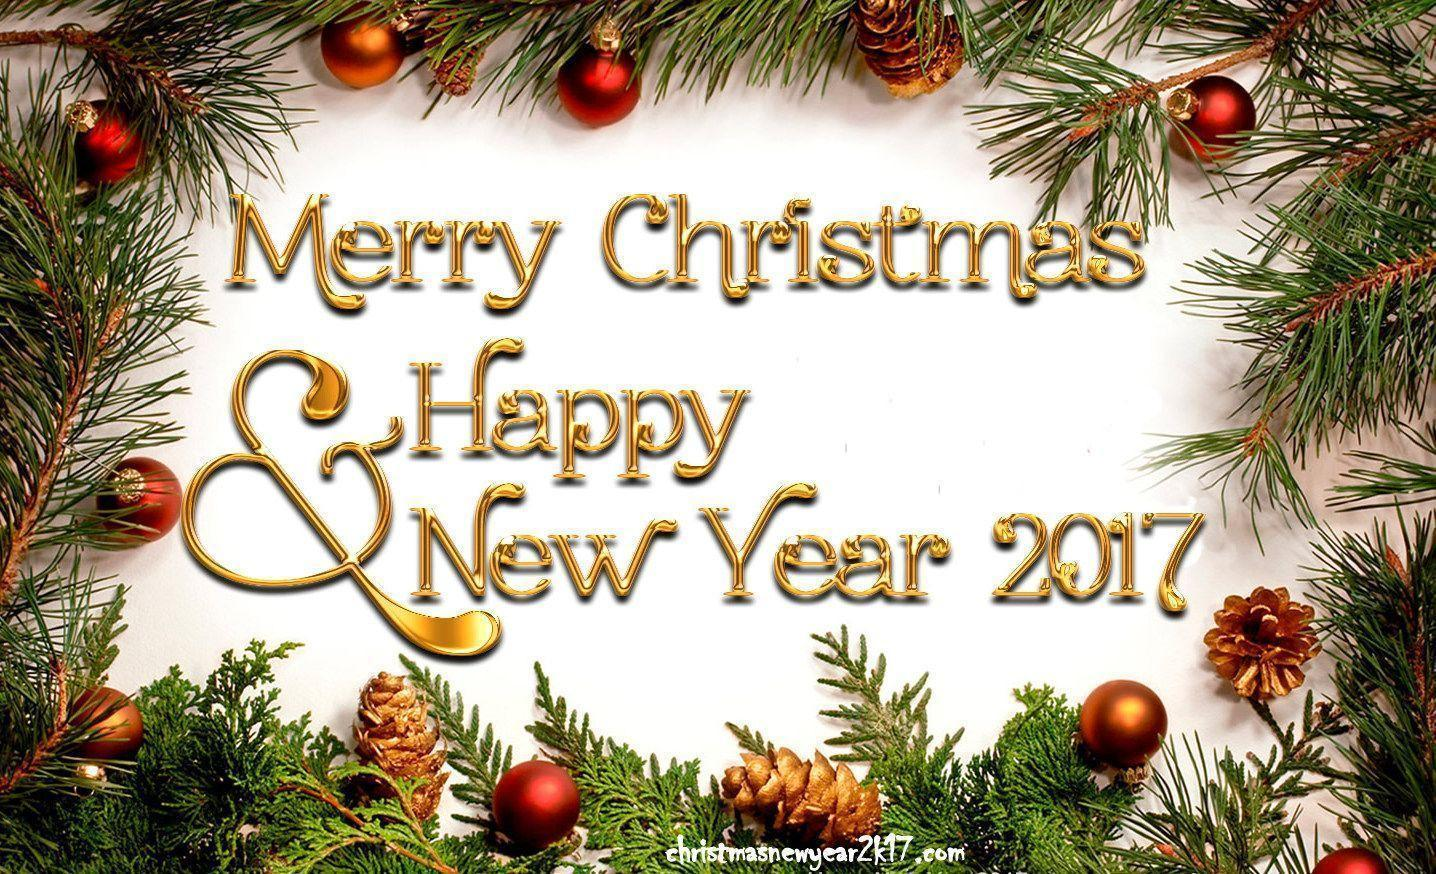 christmas wallpapers merry christmas happy new year 2017